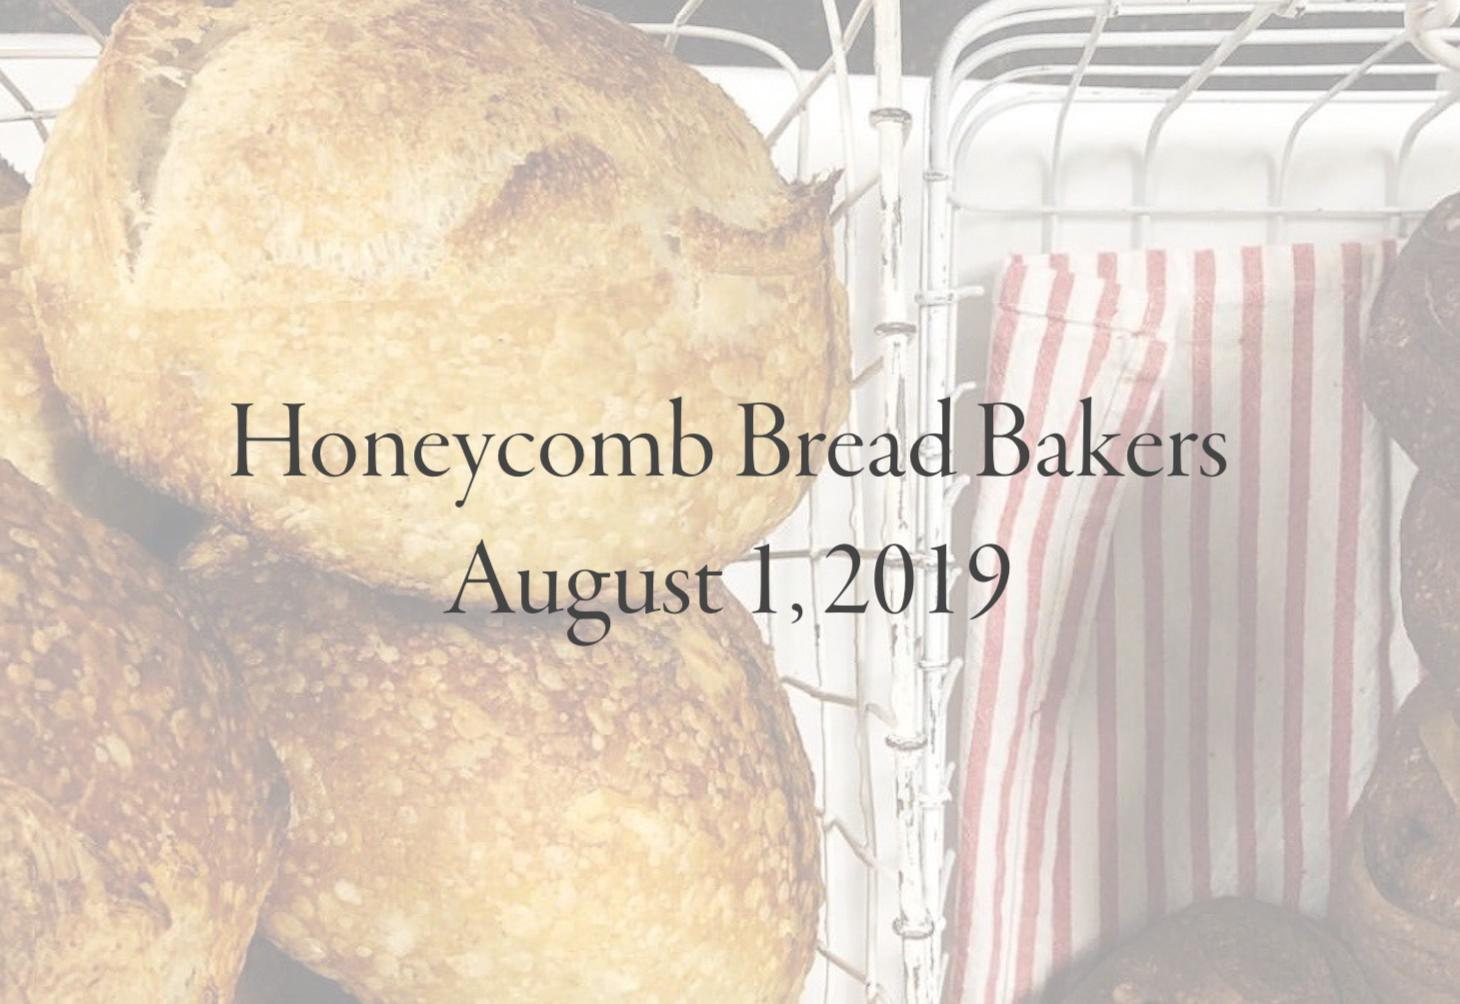 Honeycomb Bread Bakers-HAVEN.jpg